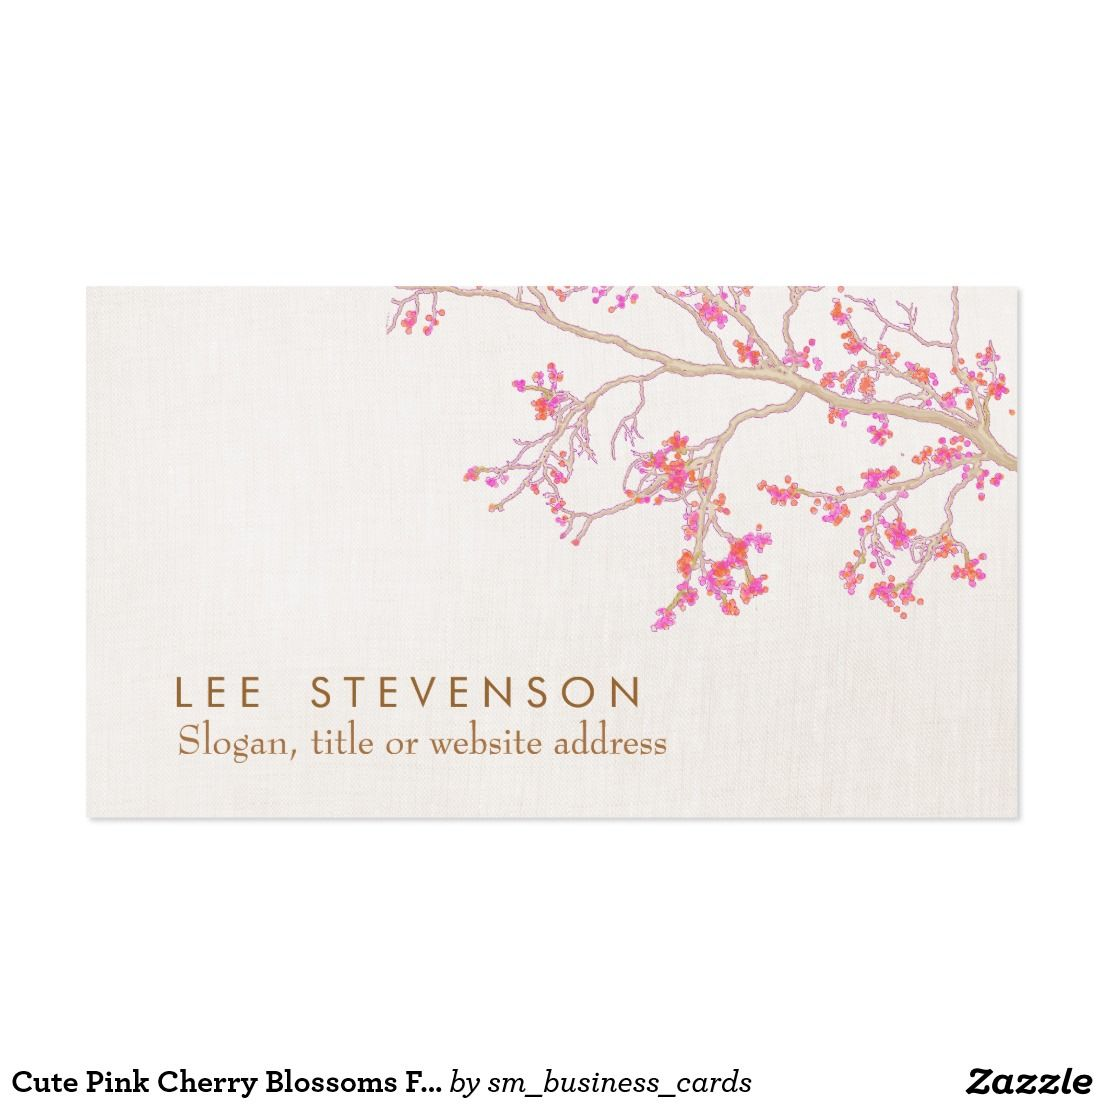 Cute Pink Cherry Blossoms Floral Nature | Business Cards | Pinterest ...